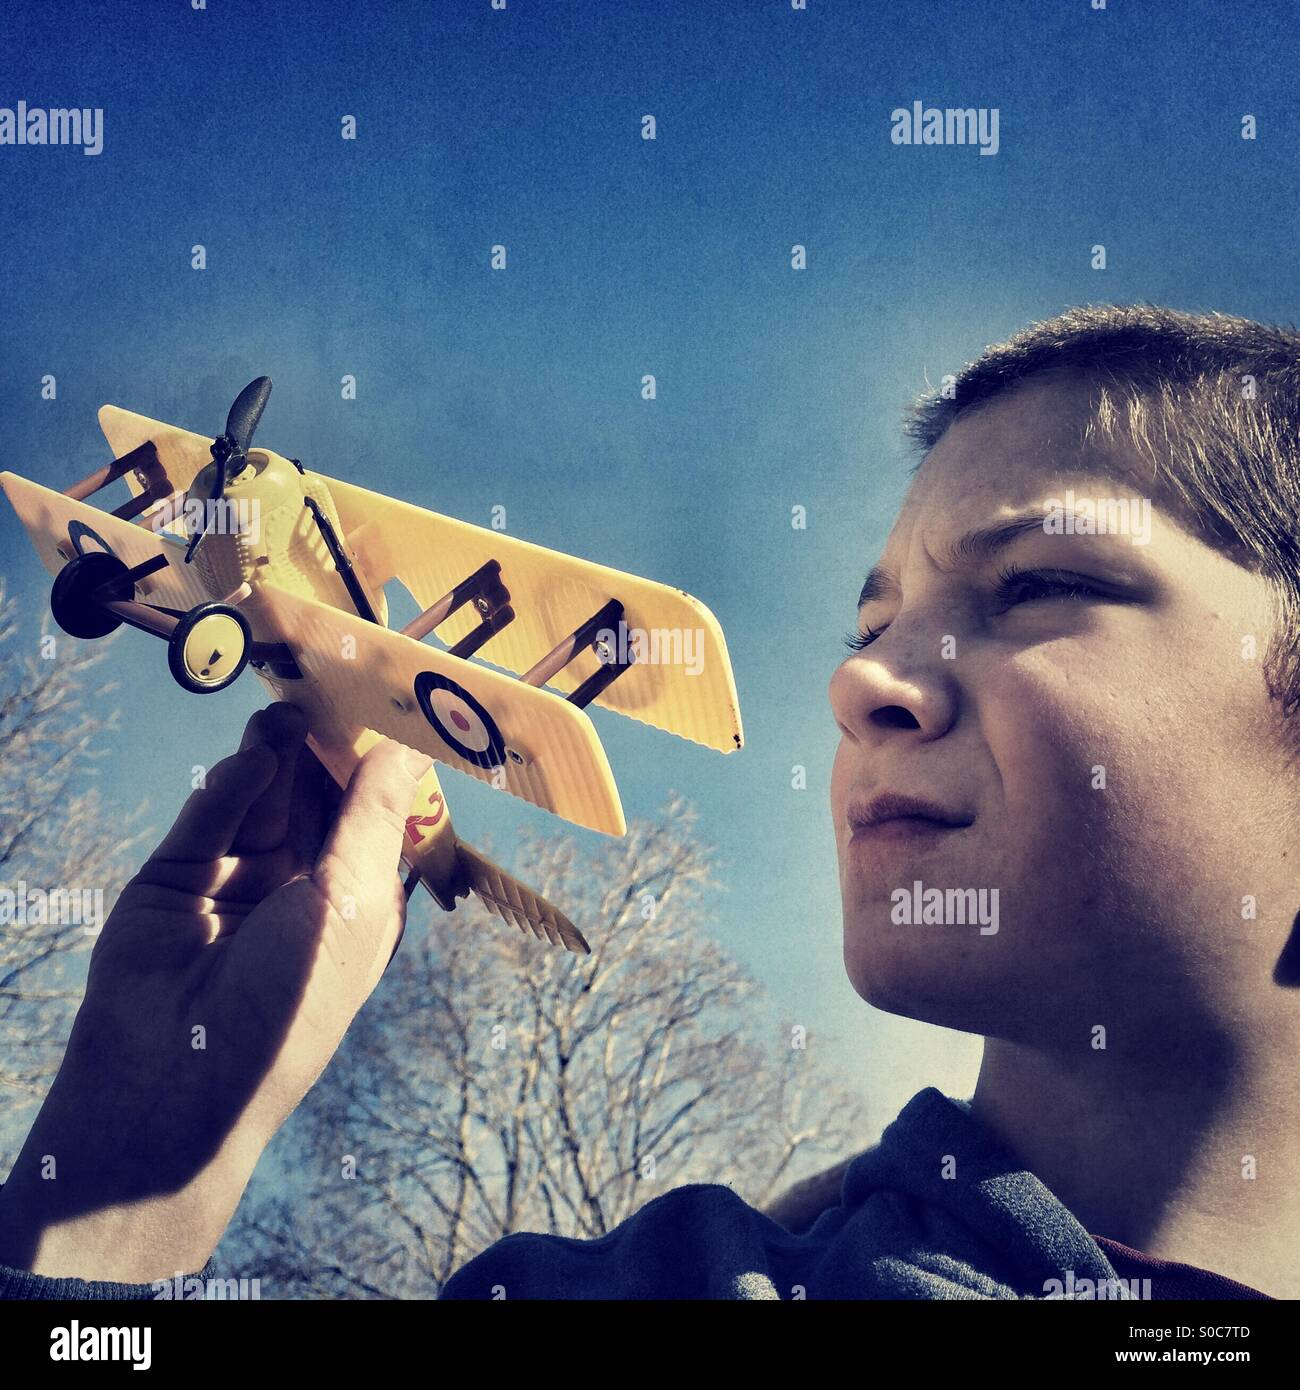 Boy flying his model biplane - Stock Image